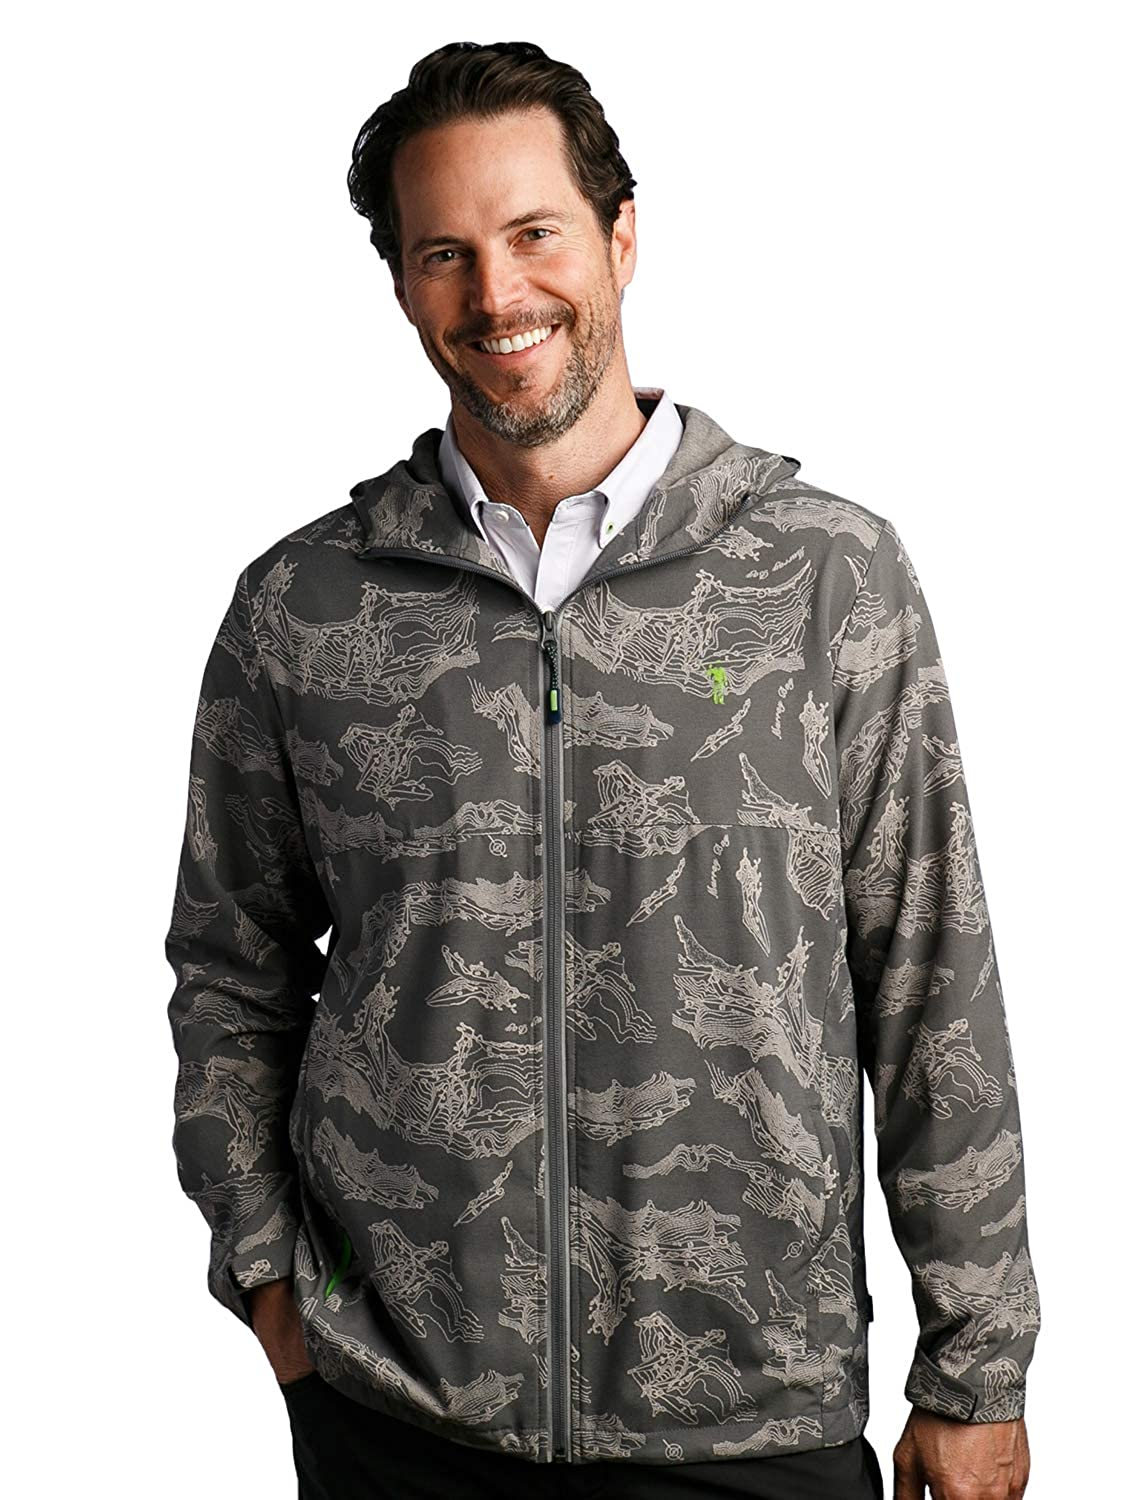 Murray Bay Downpour Jacket